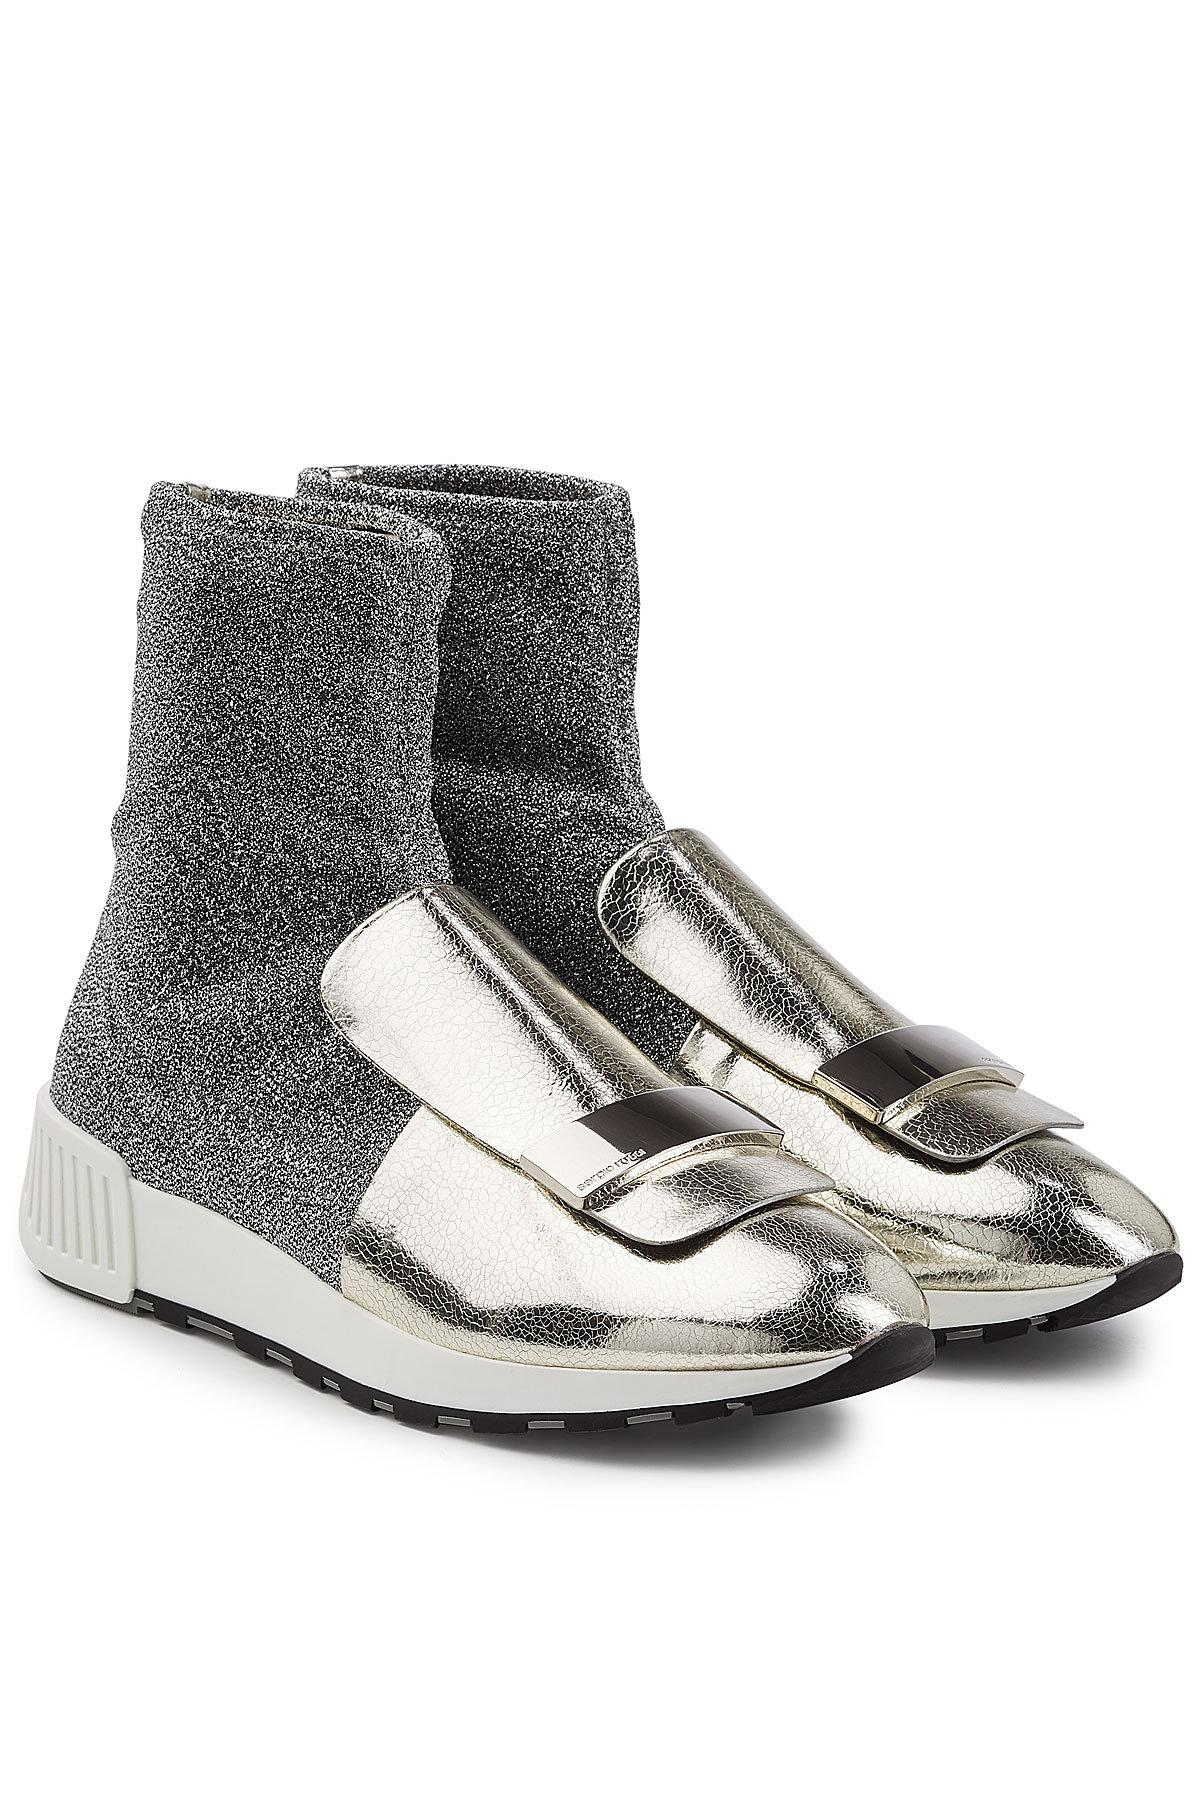 Sergio Rossi Leather And Lurex Effect Leather Sneakers Color Silver